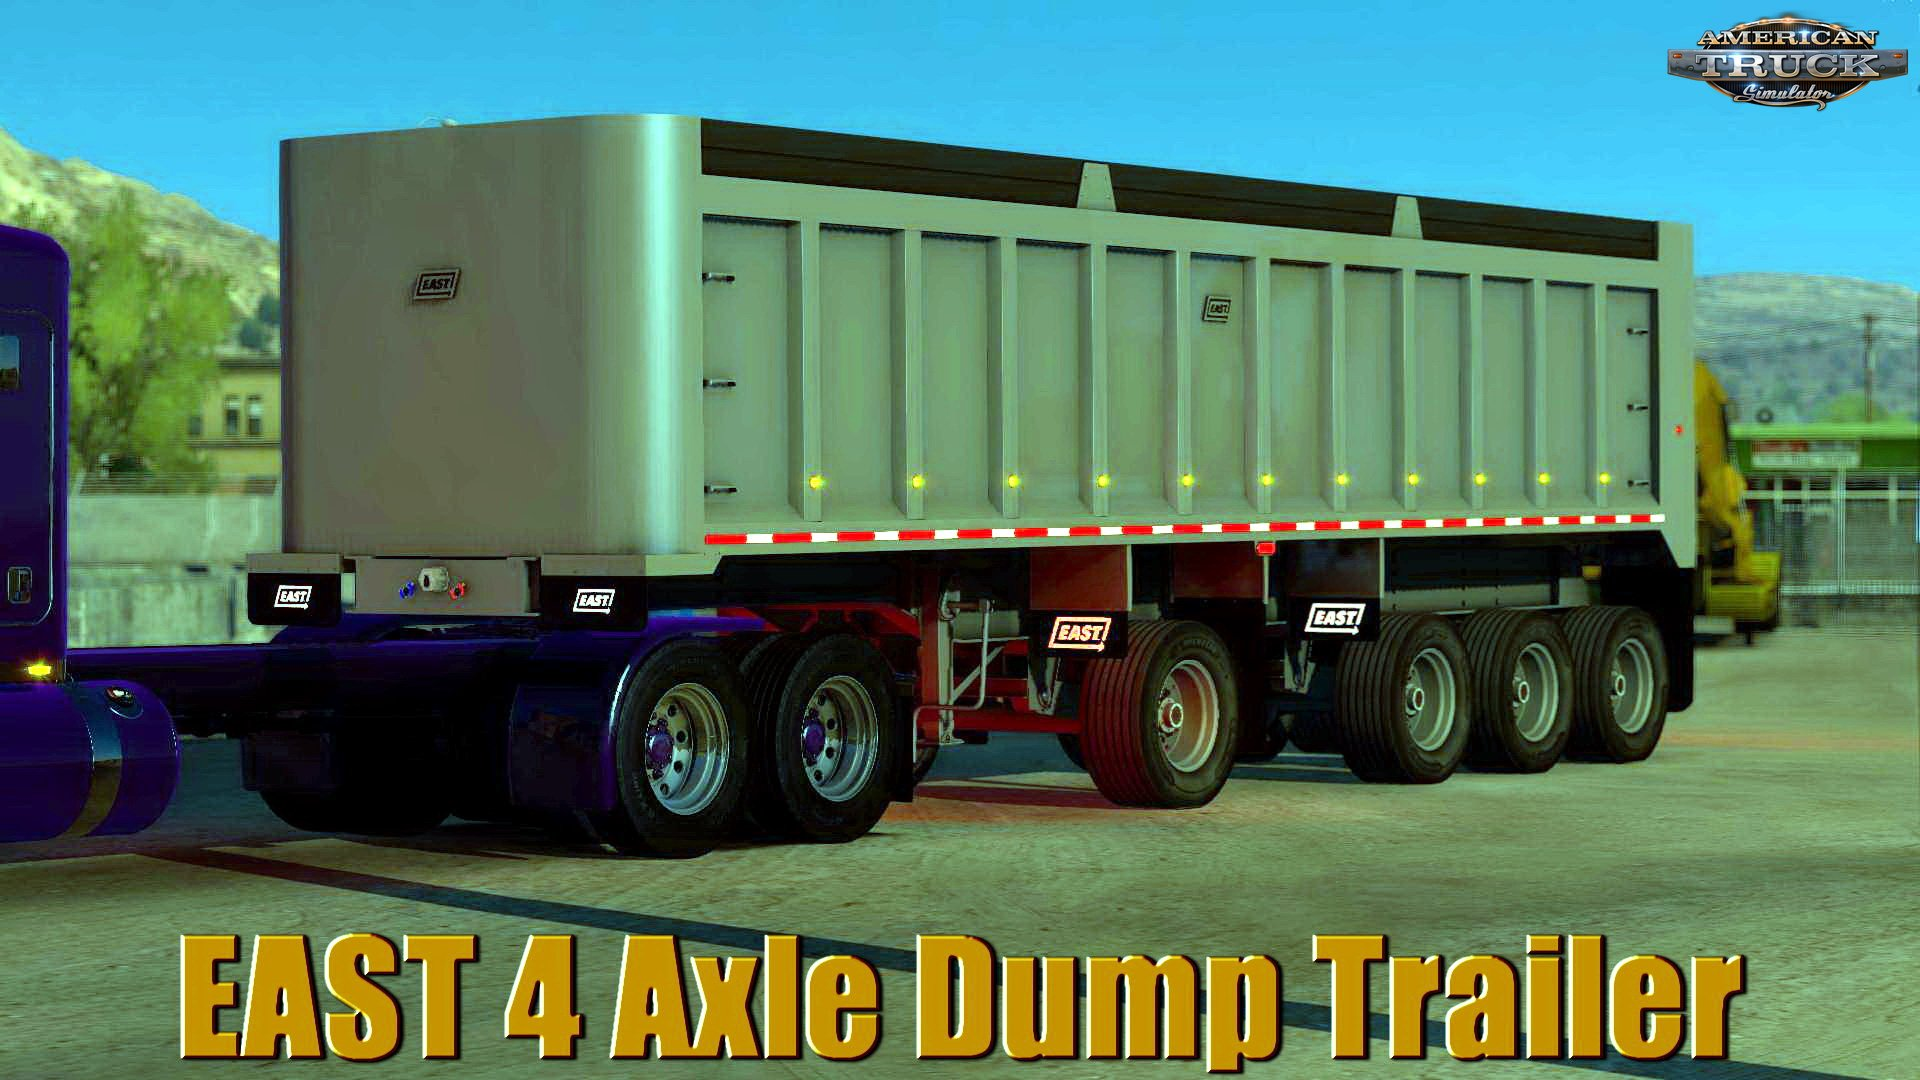 EAST 4 Axle Dump Trailer v1.0 for ATS (1.32.x)